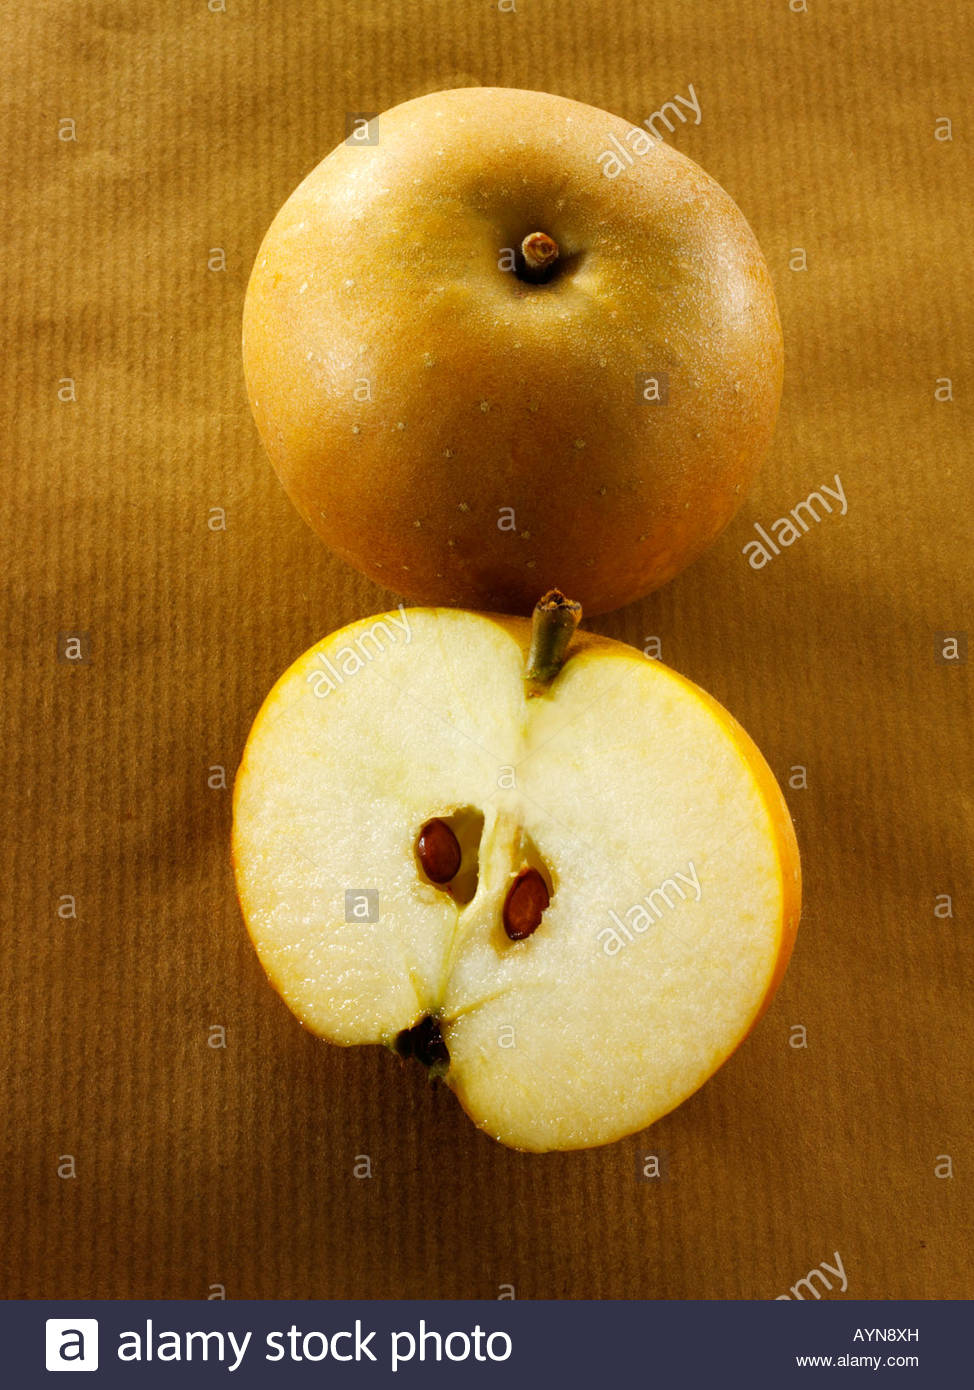 organic Russet apple cut and whole - Stock Image